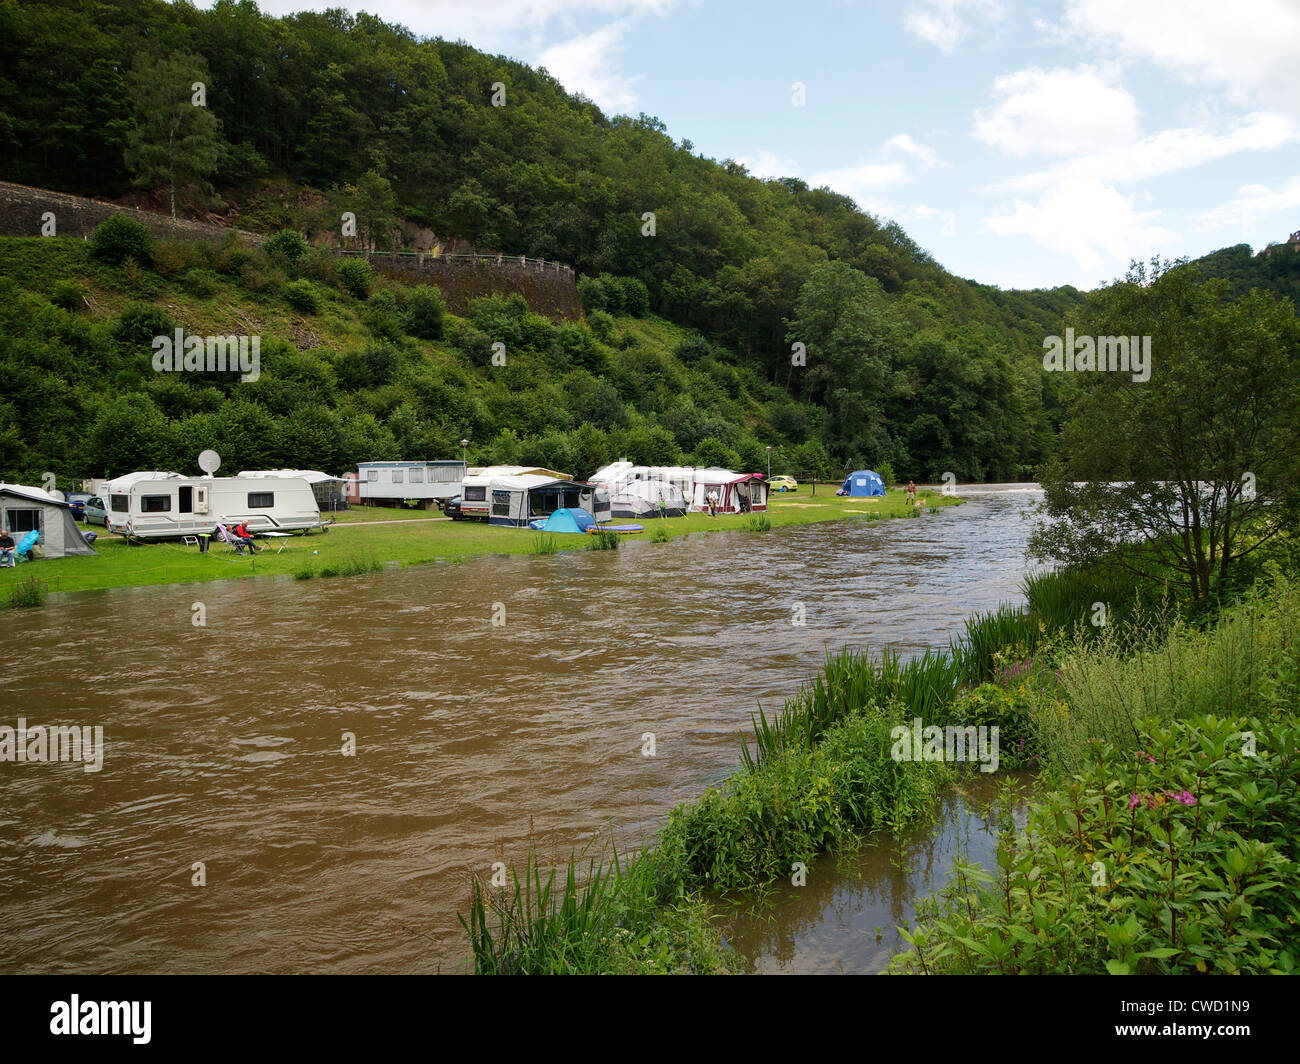 Very wet camping along the Sure river in Bourscheid, Luxemburg - Stock Image